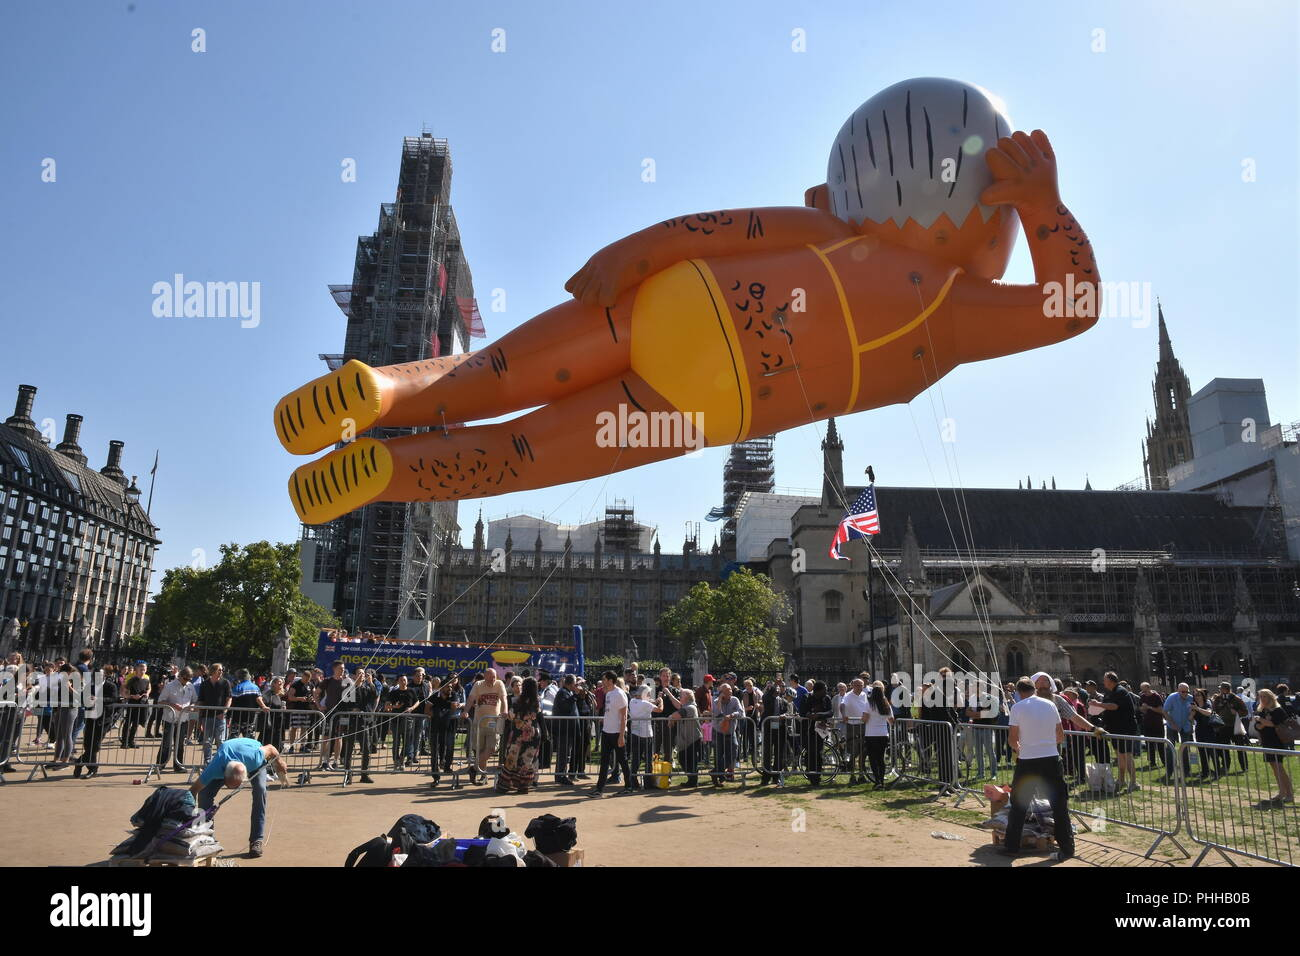 London, UK. 1st September, 2018. Make London Safe Again Campaigners flew a 29 ft balloon of Sadiq Khan wearing a bikini to mark the fight back against rising knife and gun crime amid the lack of action from the London Mayor,Parliament Square,London.UK Credit: michael melia/Alamy Live News - Stock Image